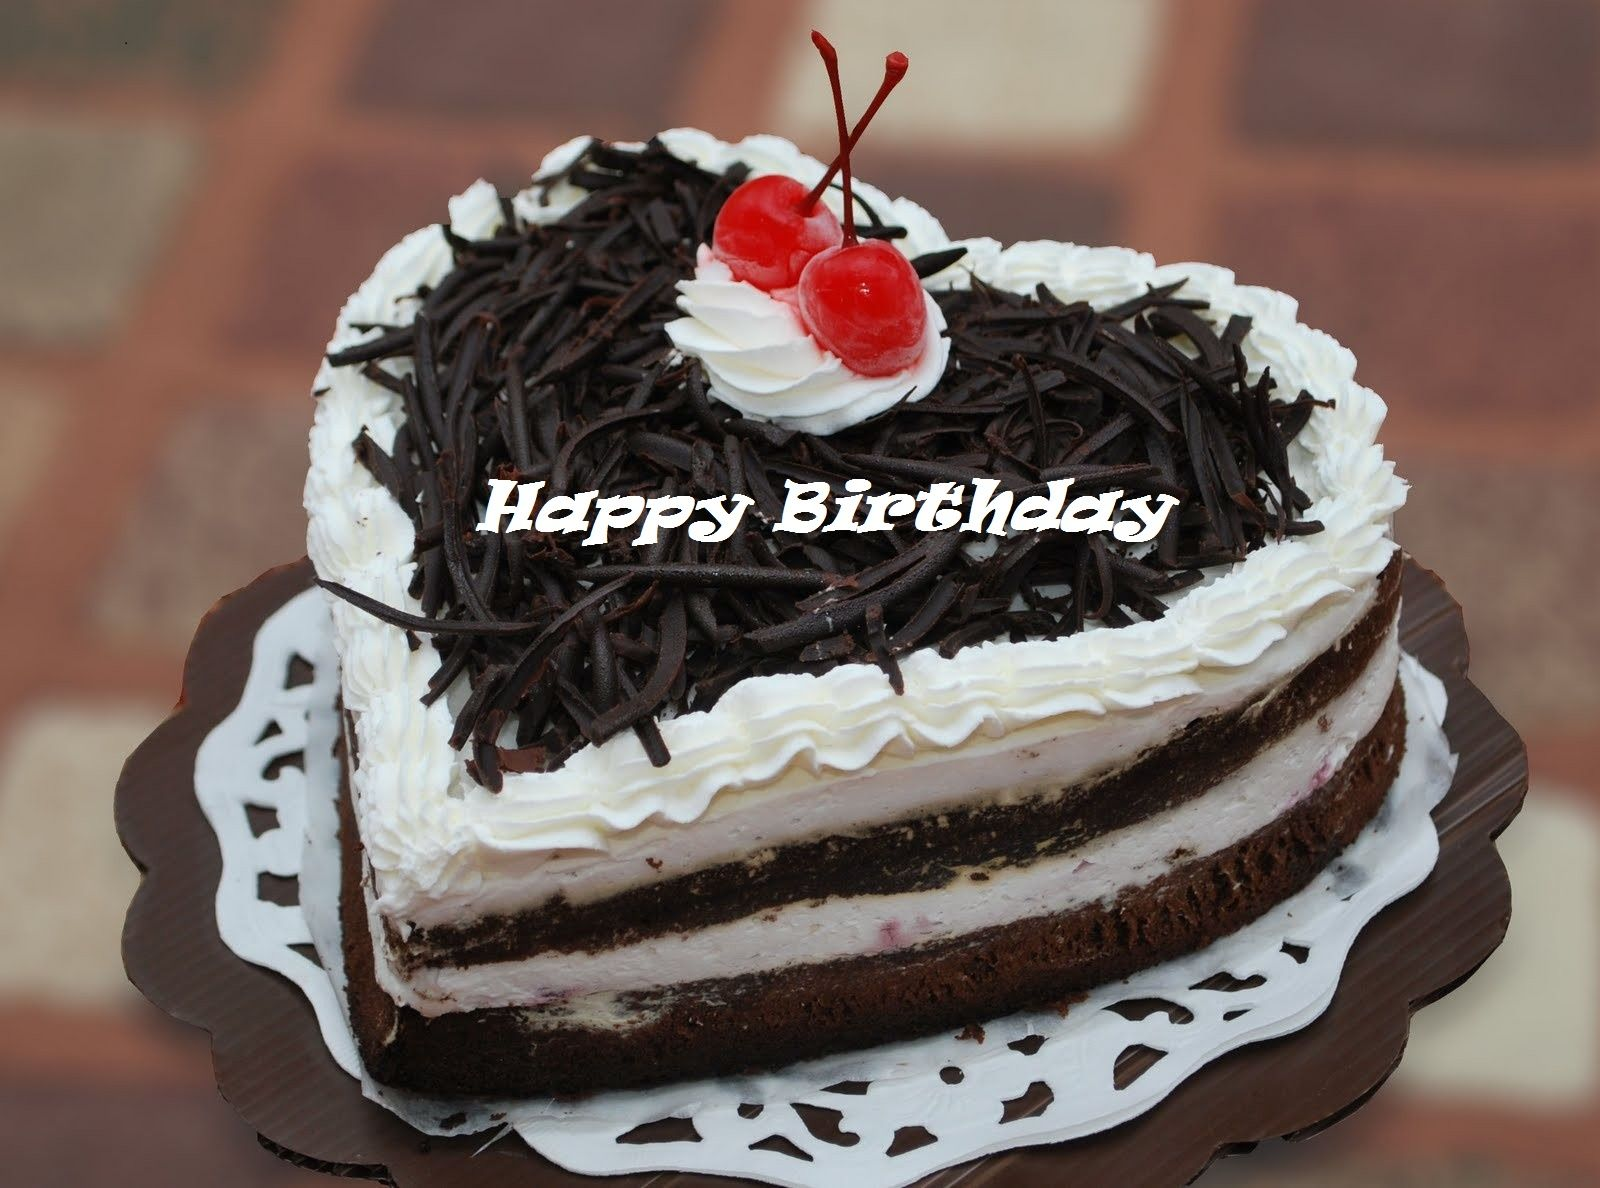 Birthday Cake Images Hd With Name ~ Happy birthday cake images wallpaper and pictures happy